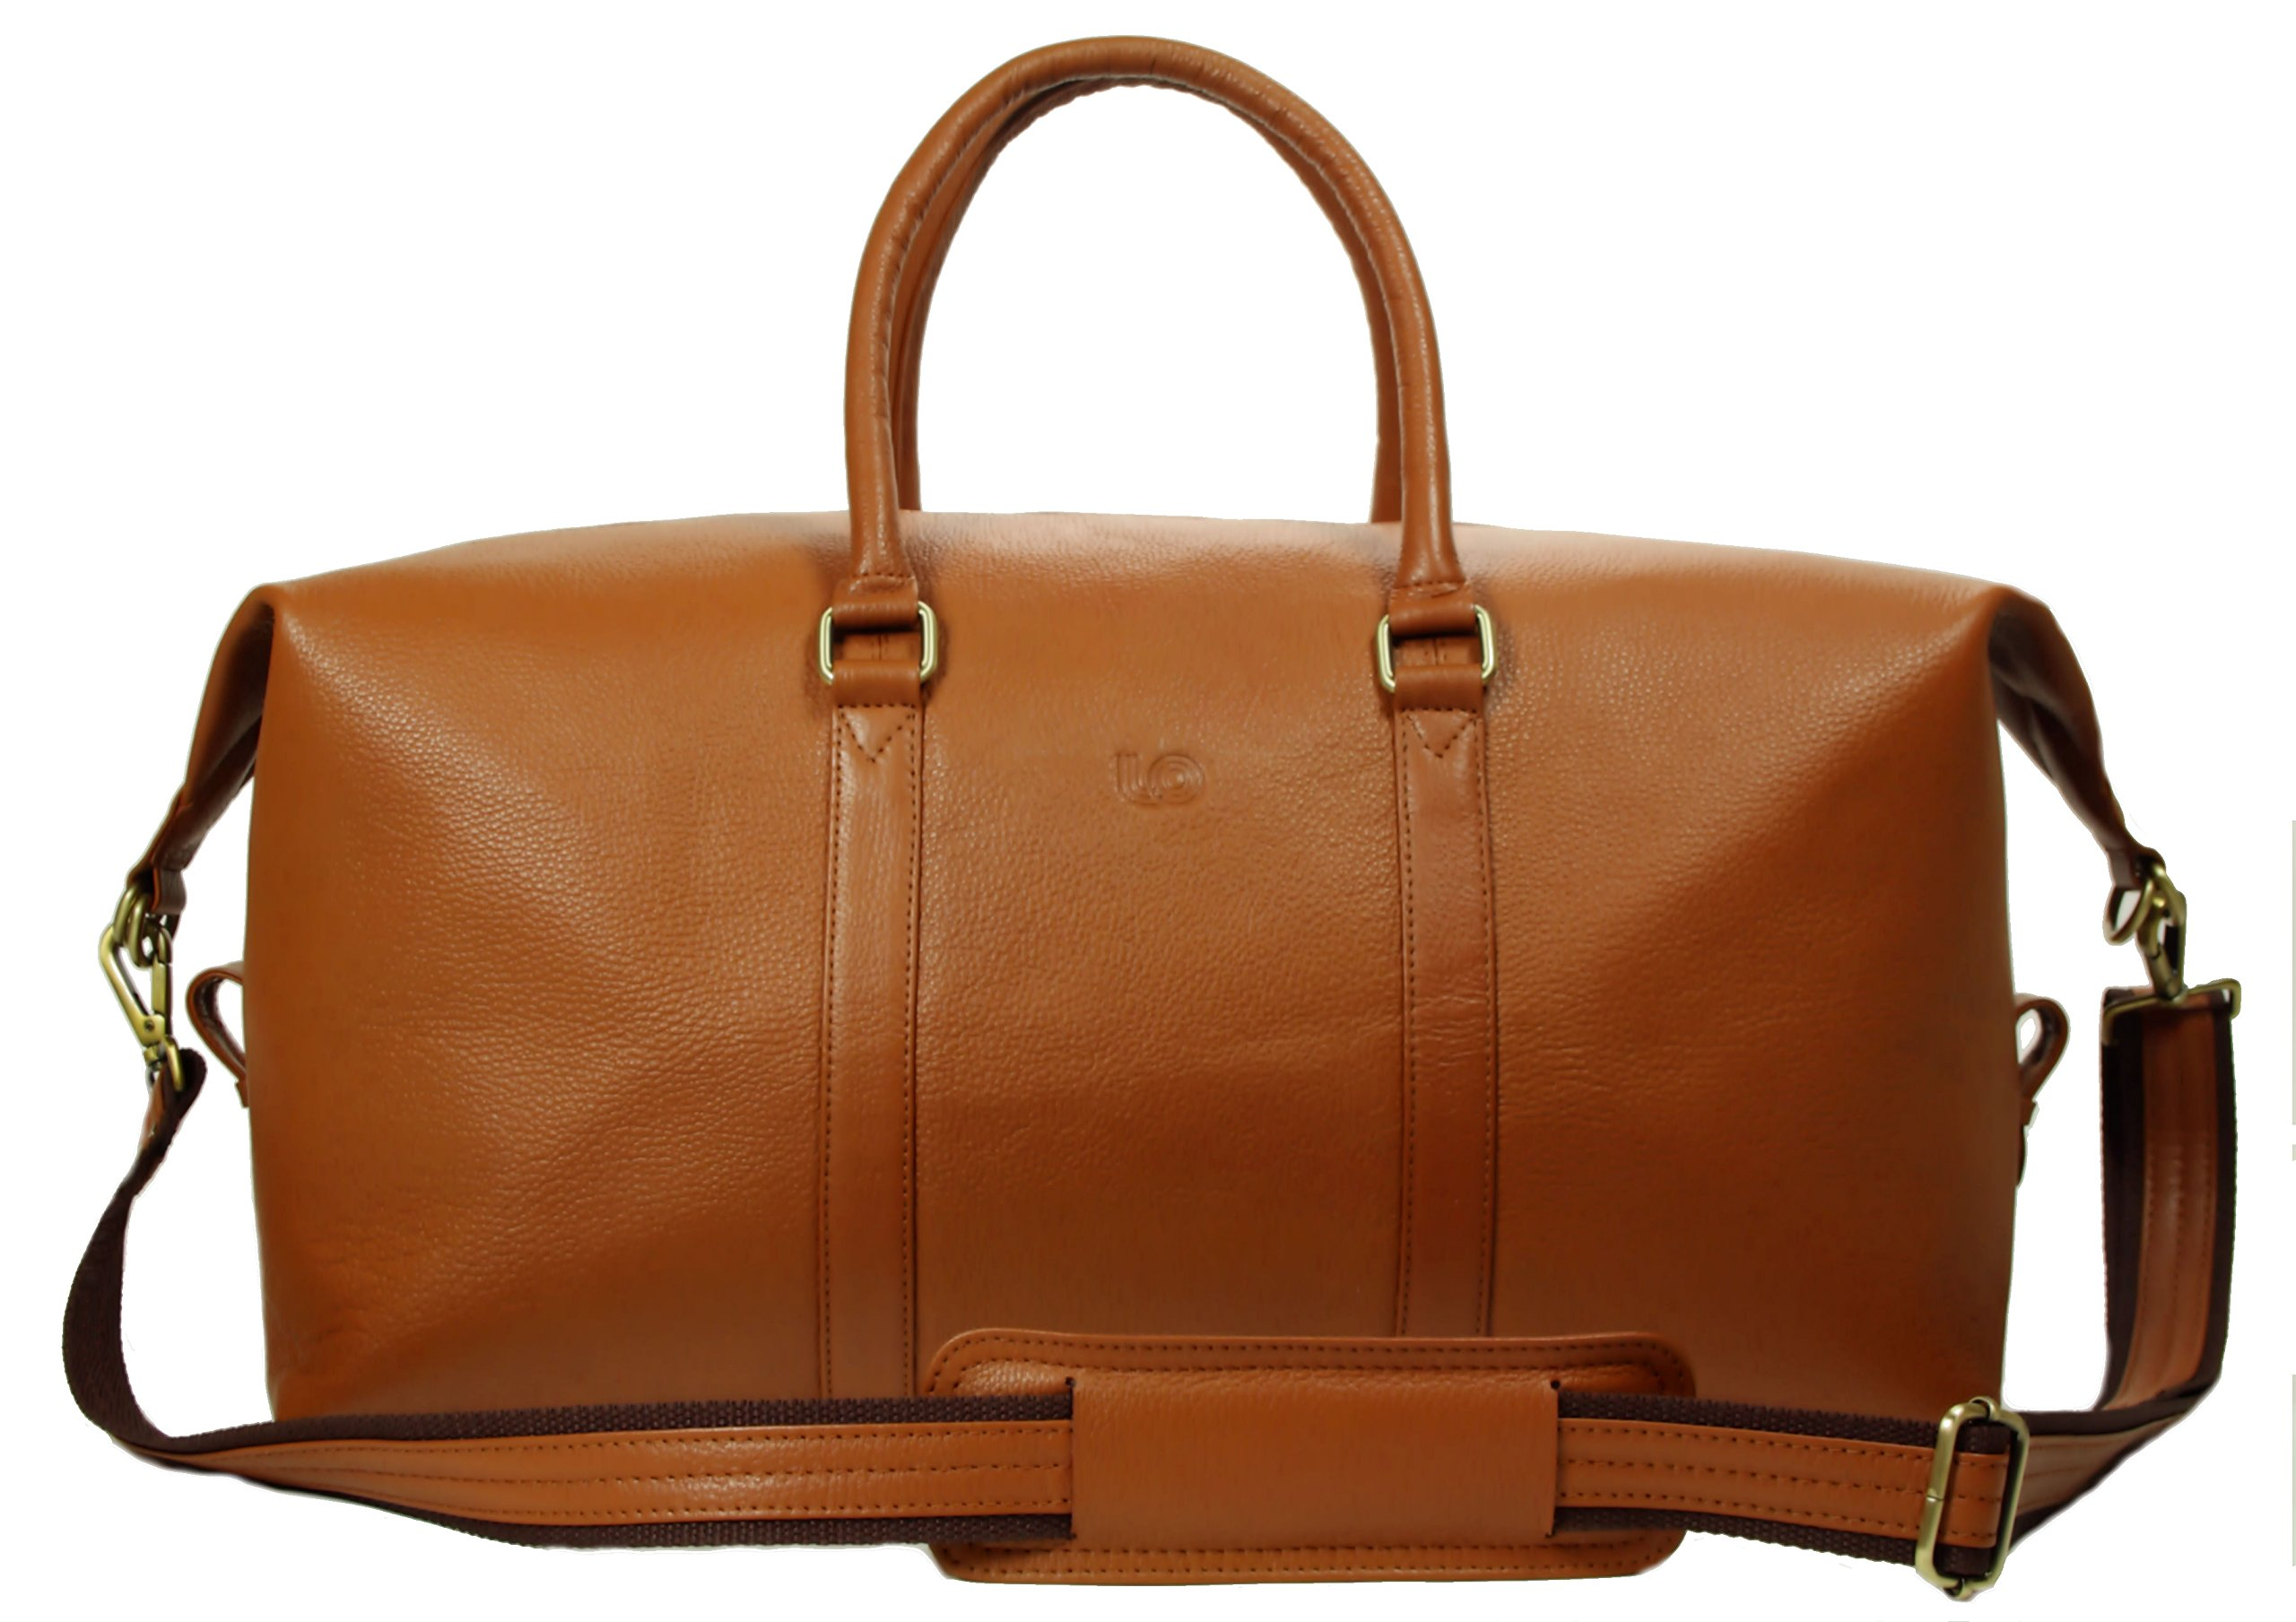 LeftOver Studio Expandable Weekend Overnight Travel Duffel Bag in Tan Top Grain Cow Leather by Leftover Studio (Image #2)